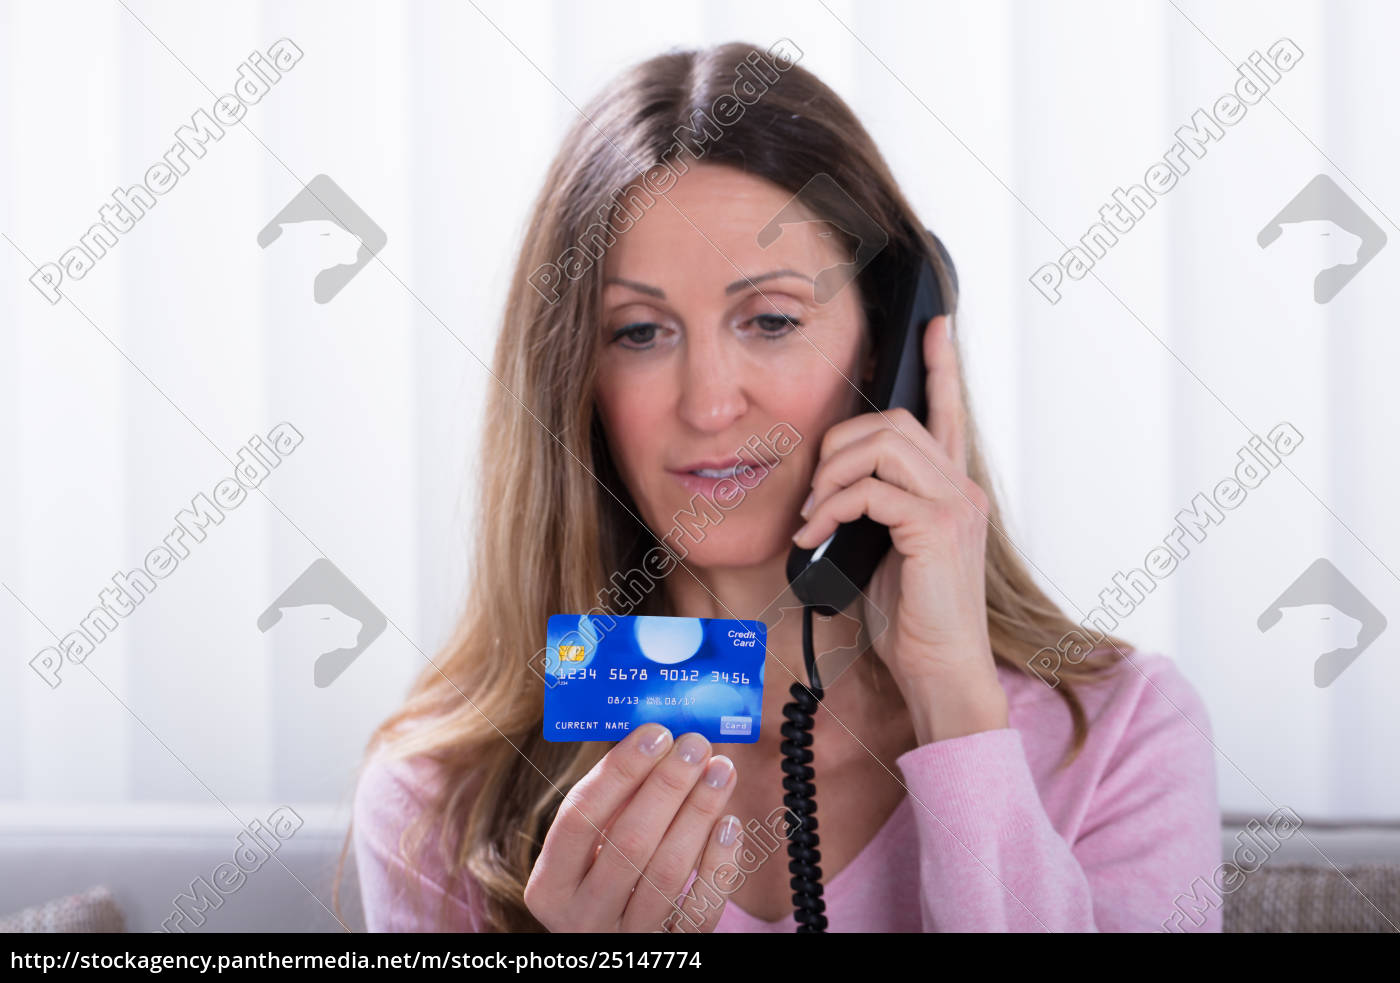 woman, holding, credit, card, while, talking - 25147774